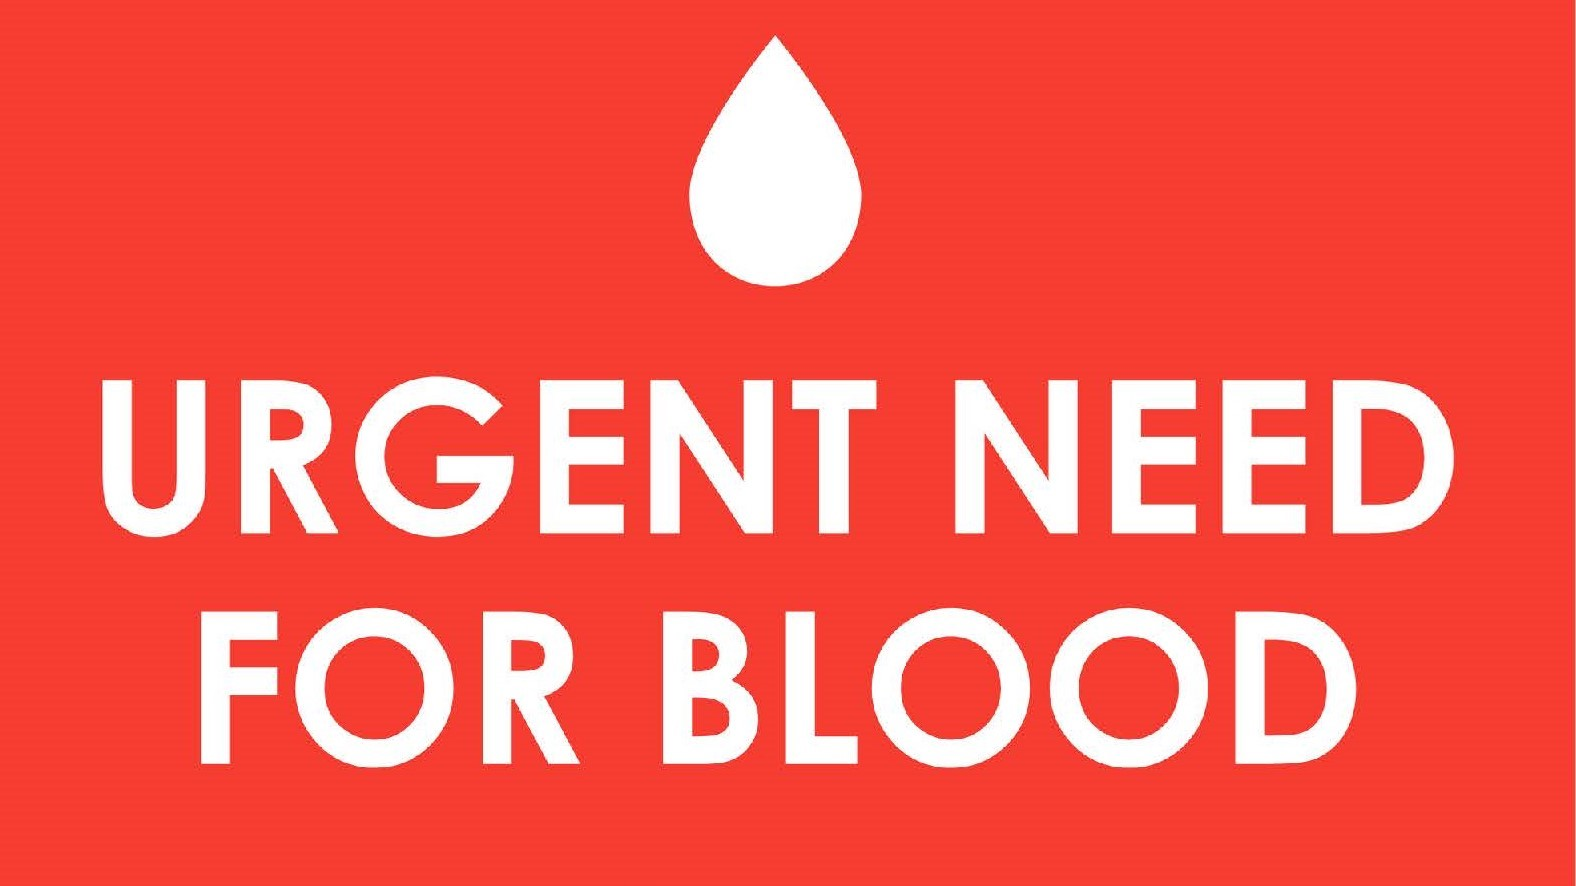 2nd Swope Park Community Blood Drive_Urgent Need Flyer